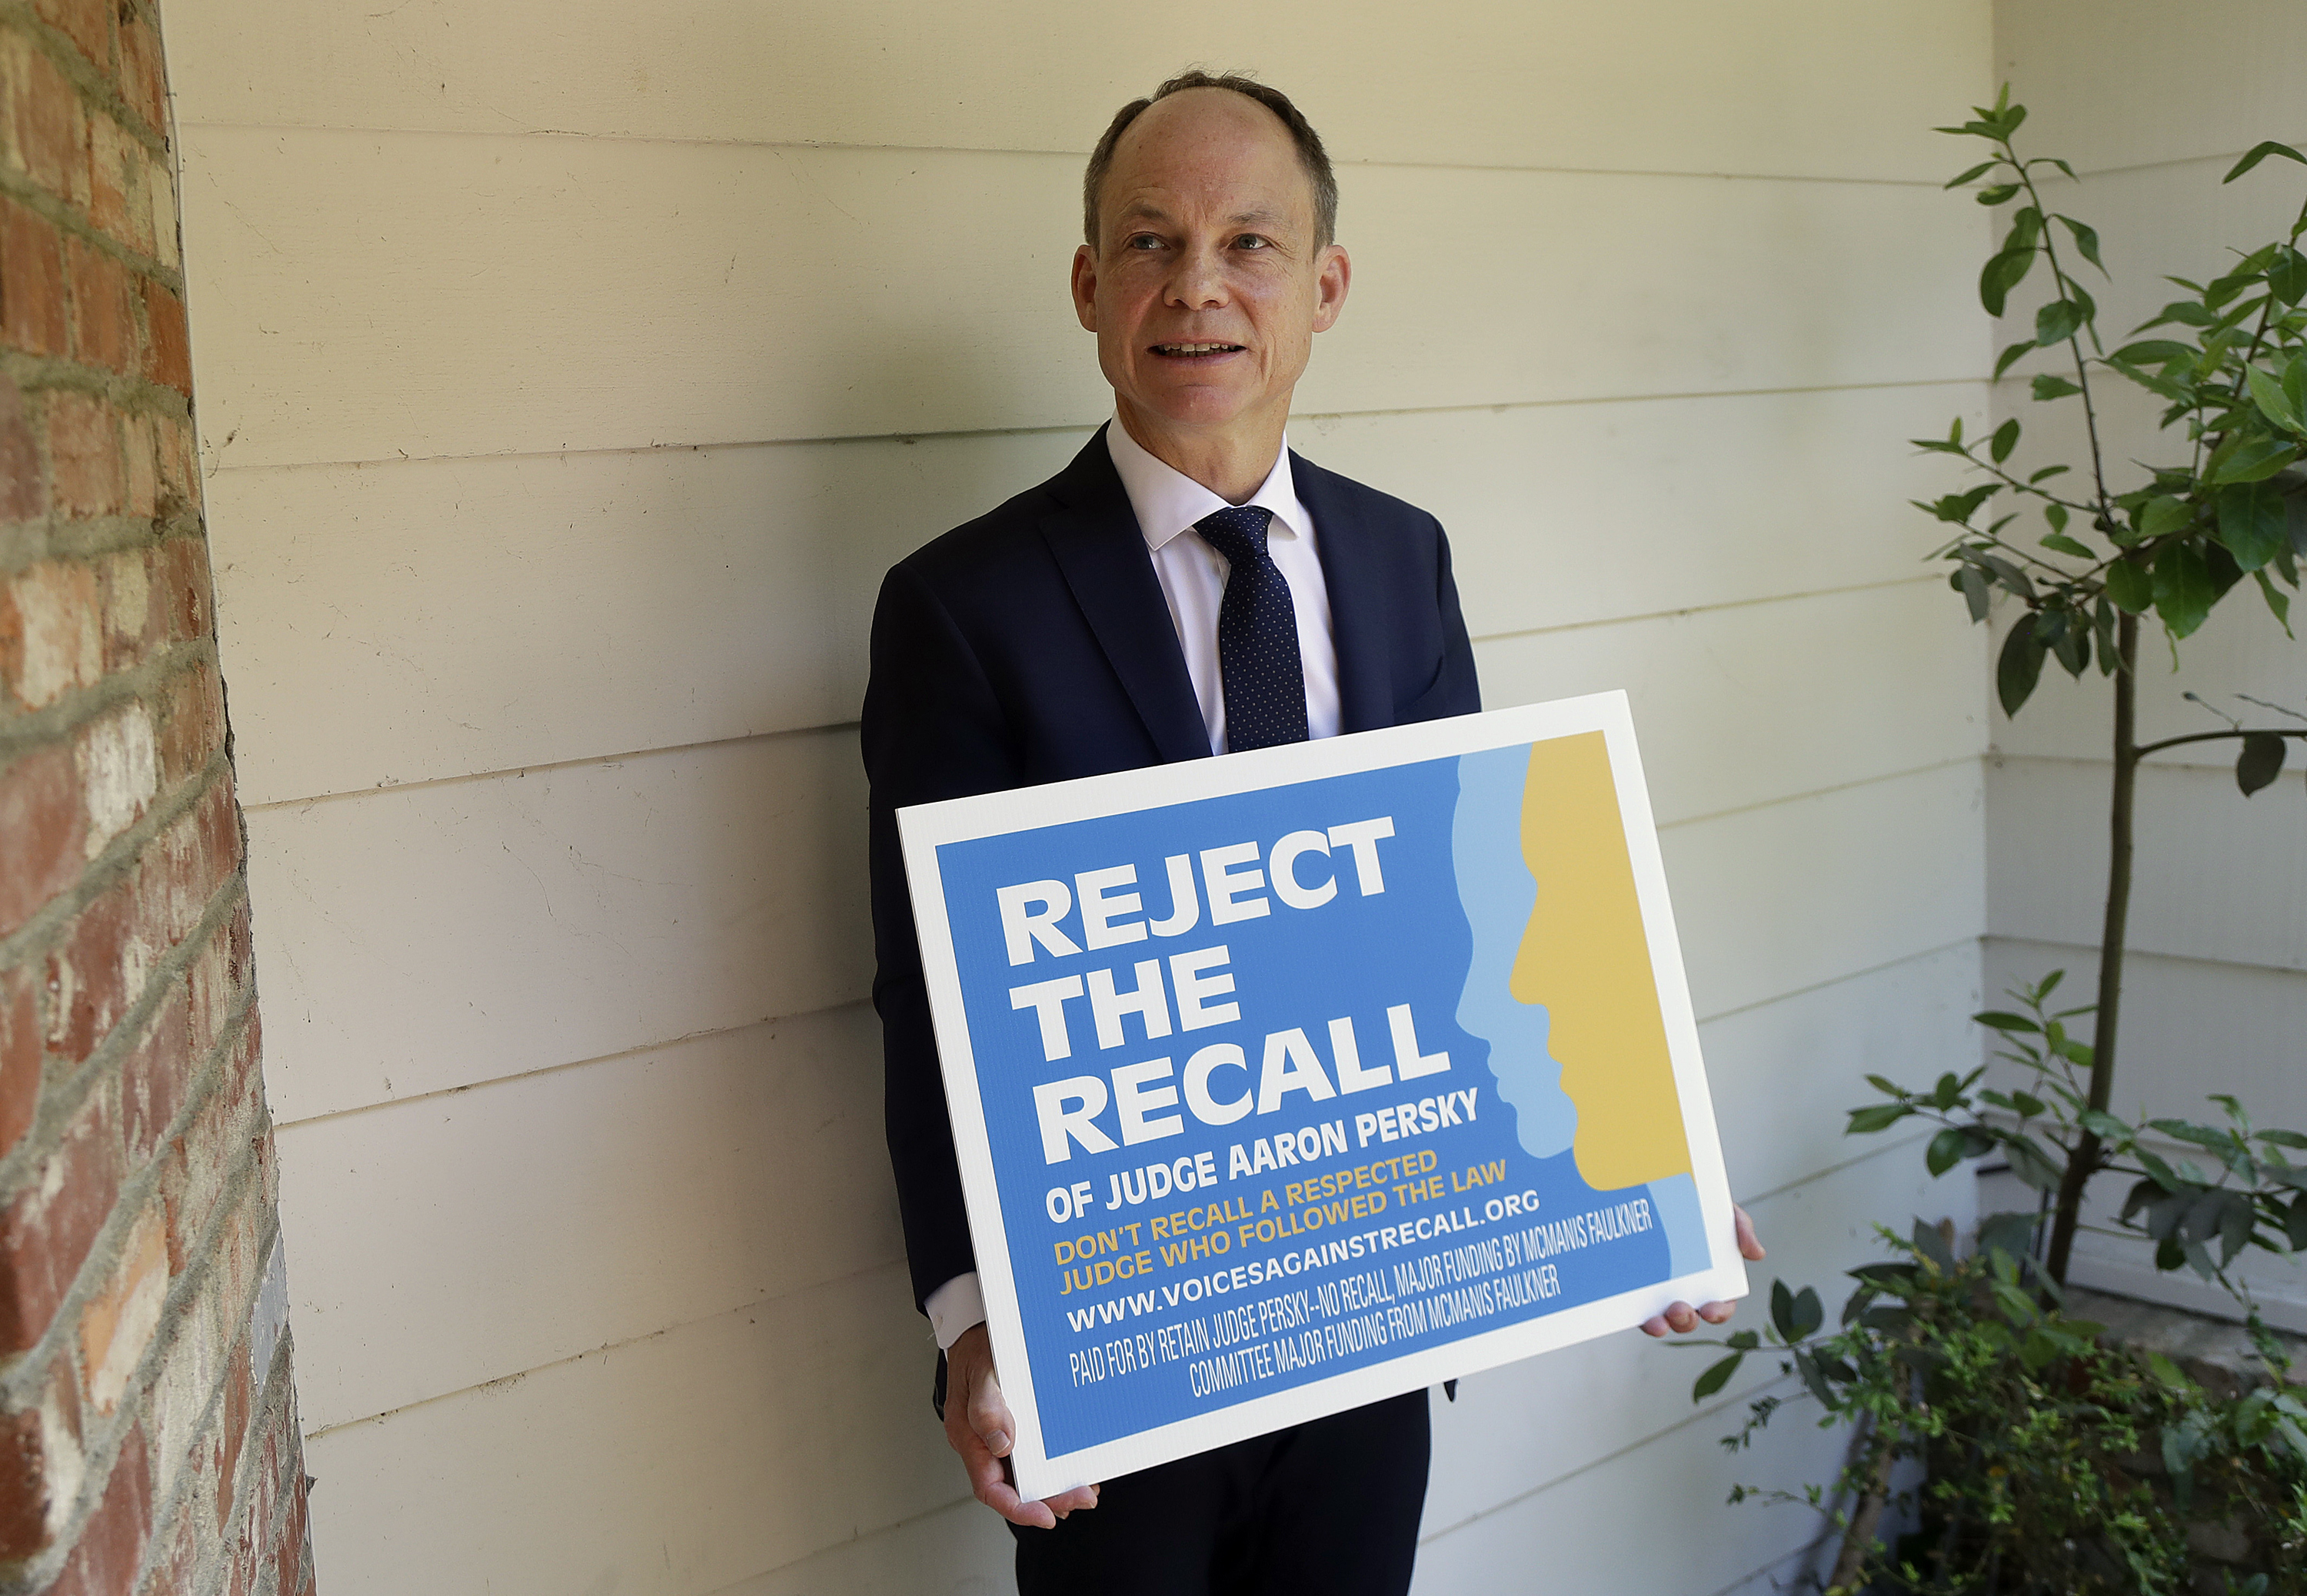 Judge Aaron Persky poses for a photo with a sign opposing his recall in Los Altos Hills, Calif.